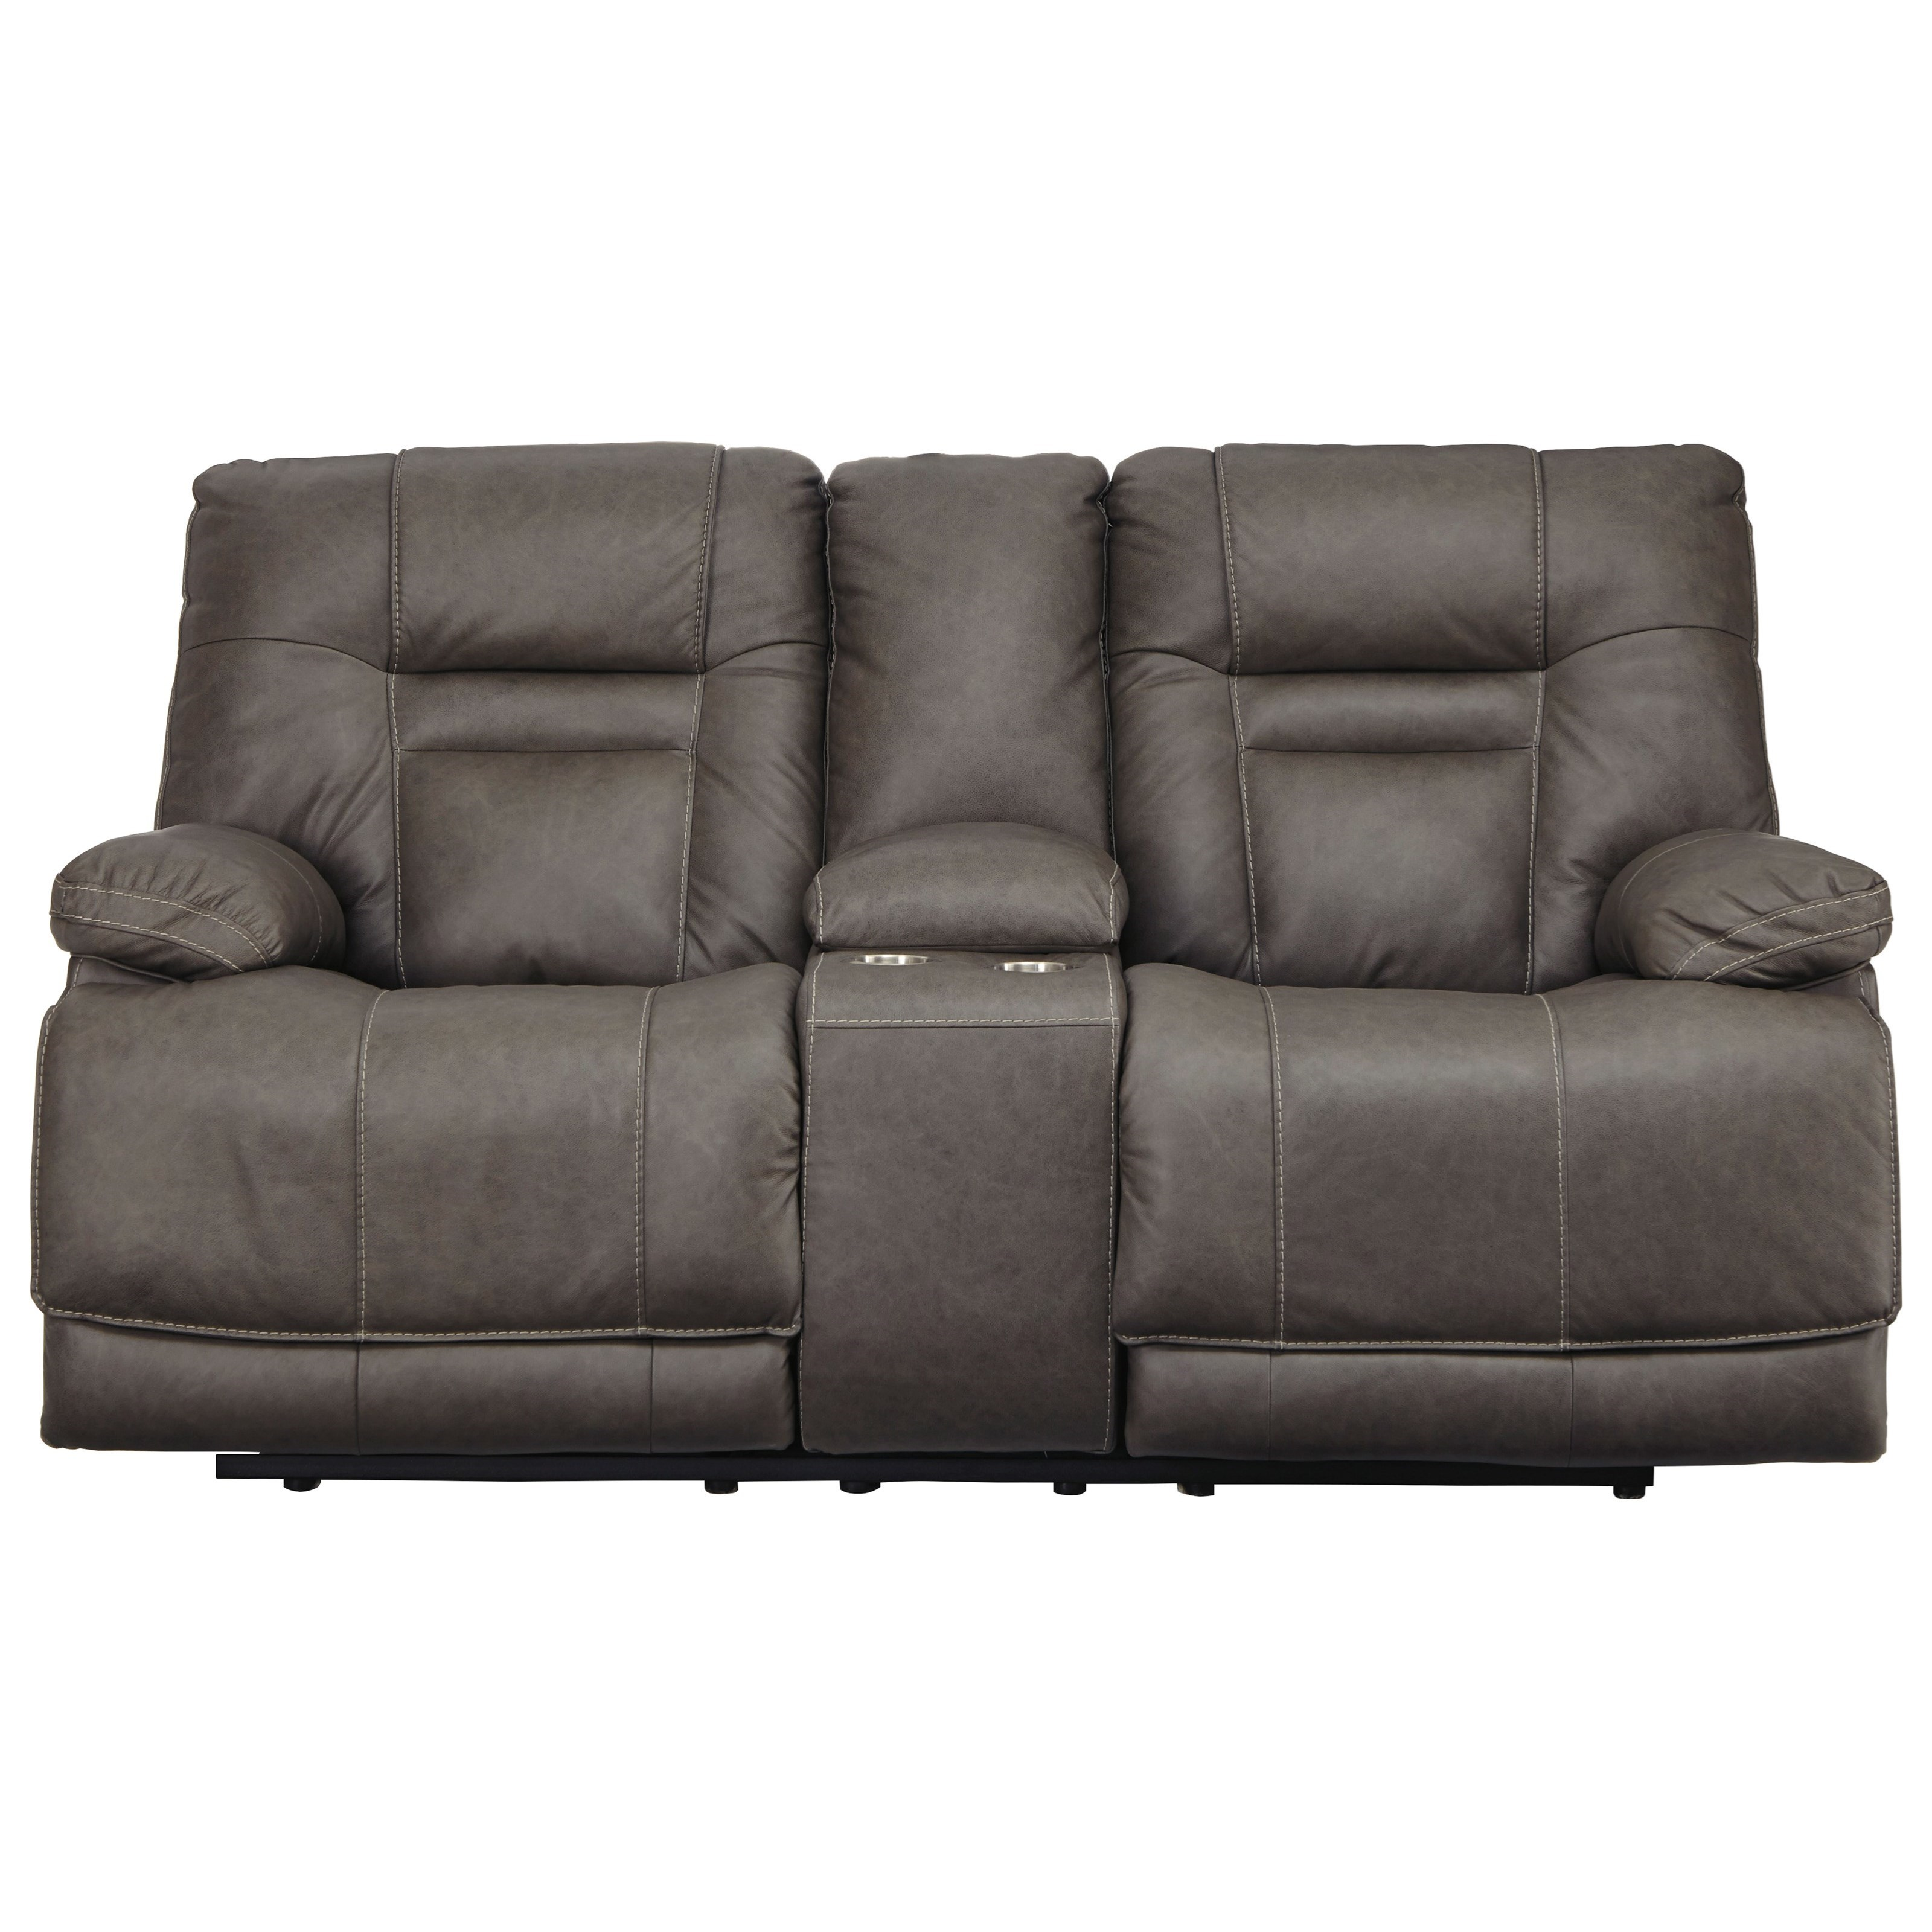 Watson TRIPLE PWR Reclining Leather Loveseat by Signature at Walker's Furniture